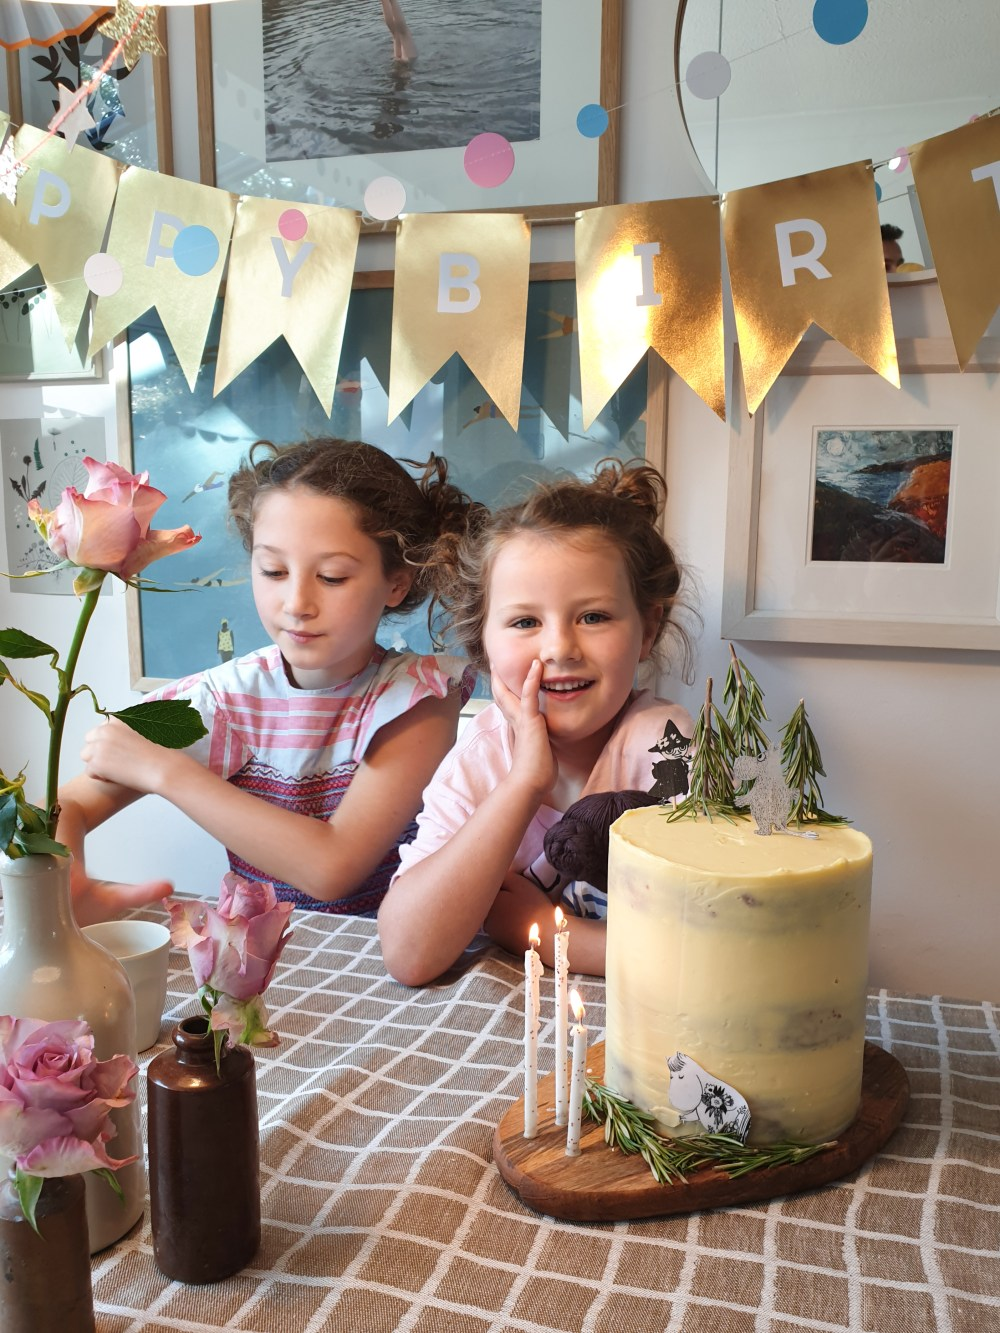 Scandinavian Interiors and lifestyle. Kid's birthday party inspiration.